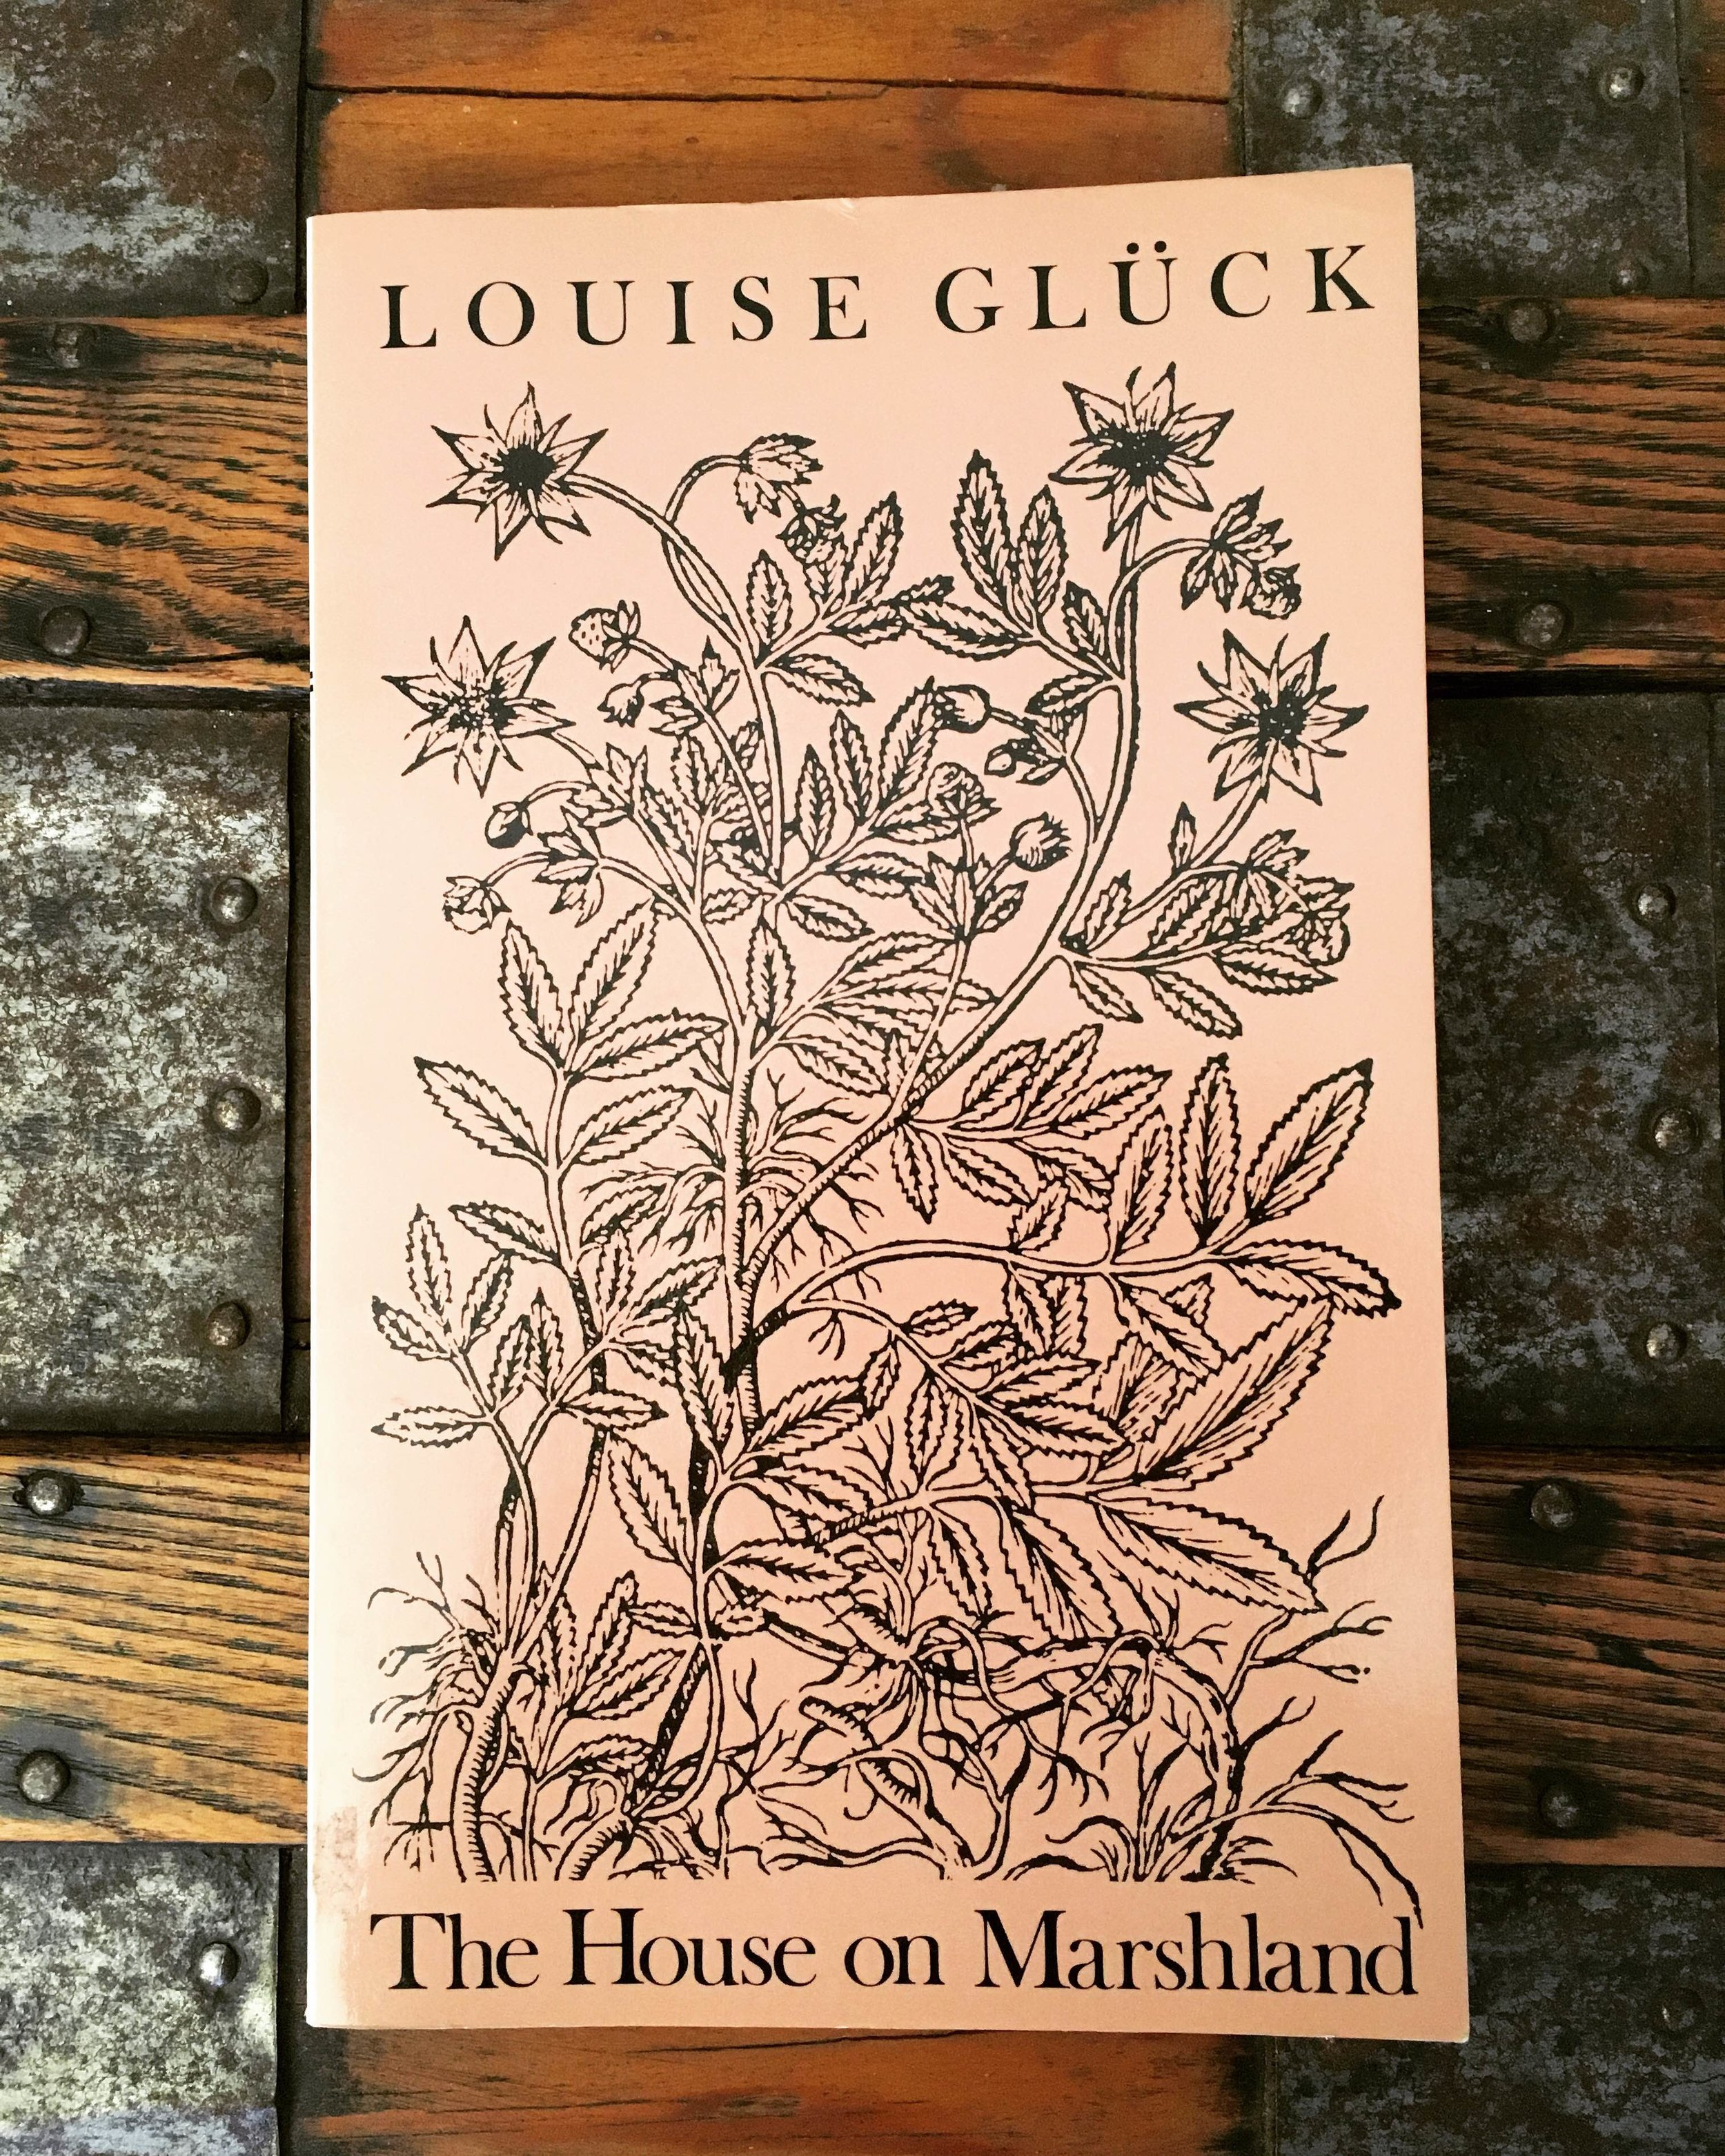 Louise Gluck The House On Marshland Book Of Poetry Review Calynn Writes